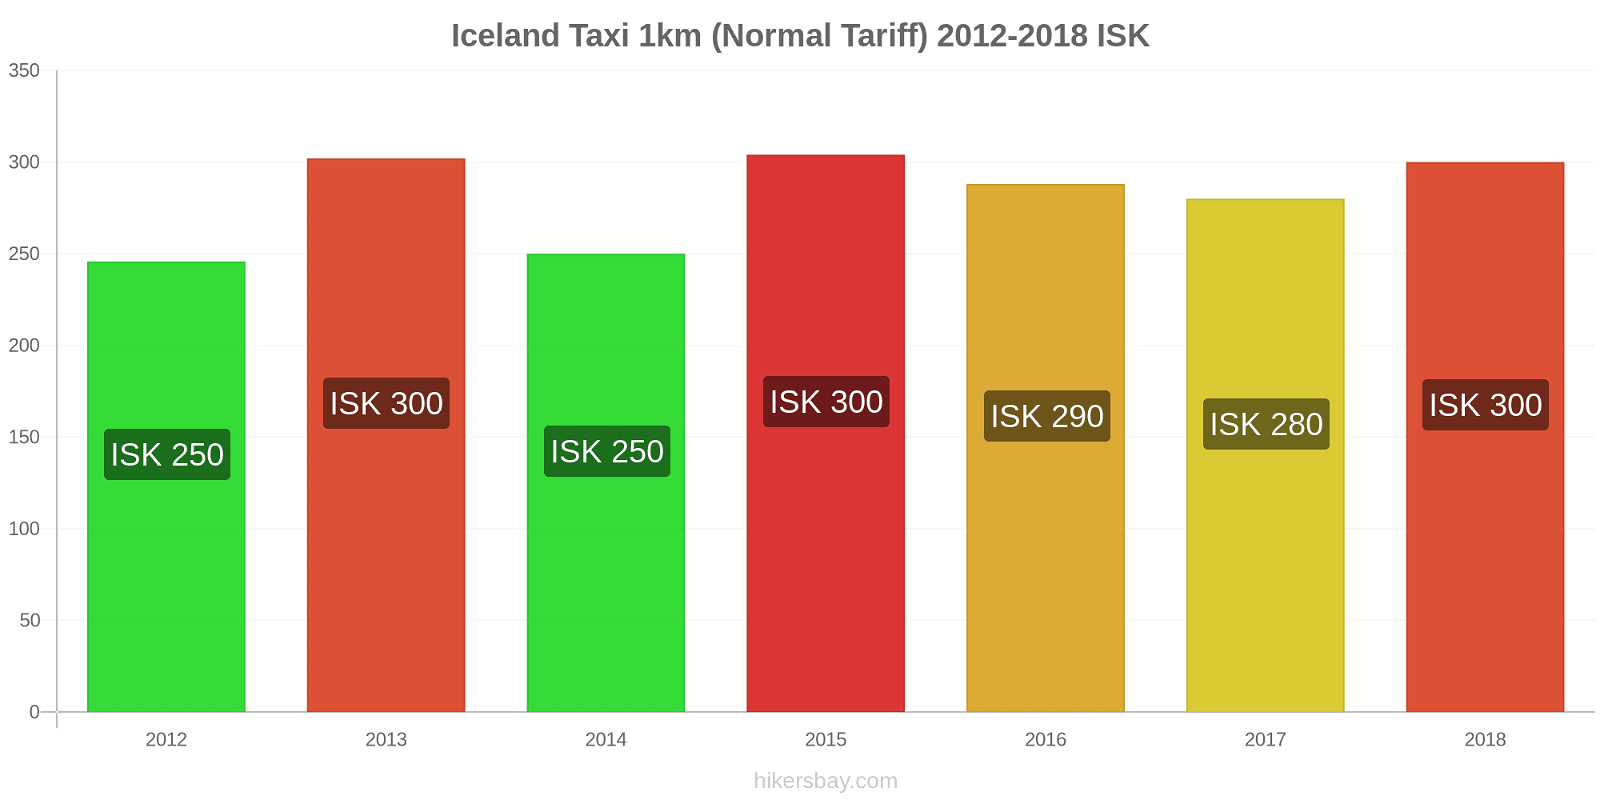 Iceland price changes Taxi 1km (Normal Tariff) hikersbay.com